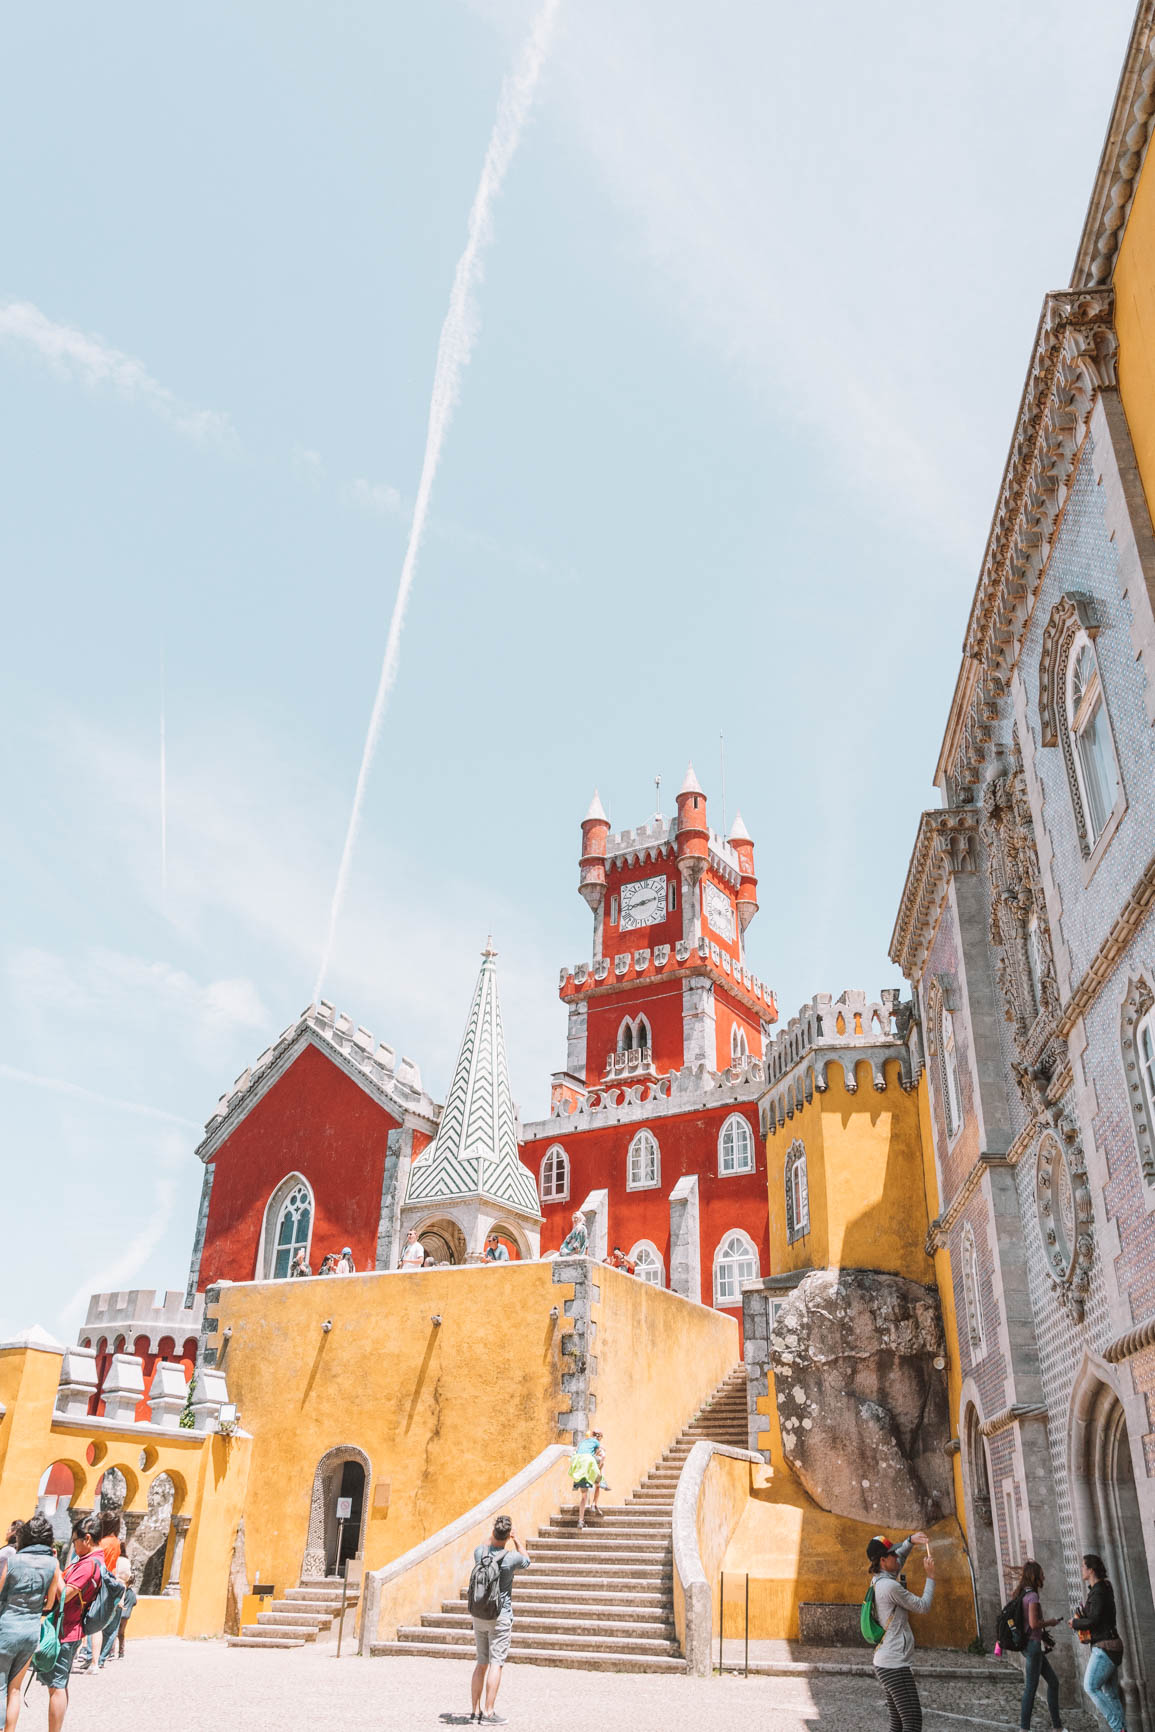 Palacio da Pena Day trip From Lisbon to Sintra  #Portugal #Europe #TravelBlog